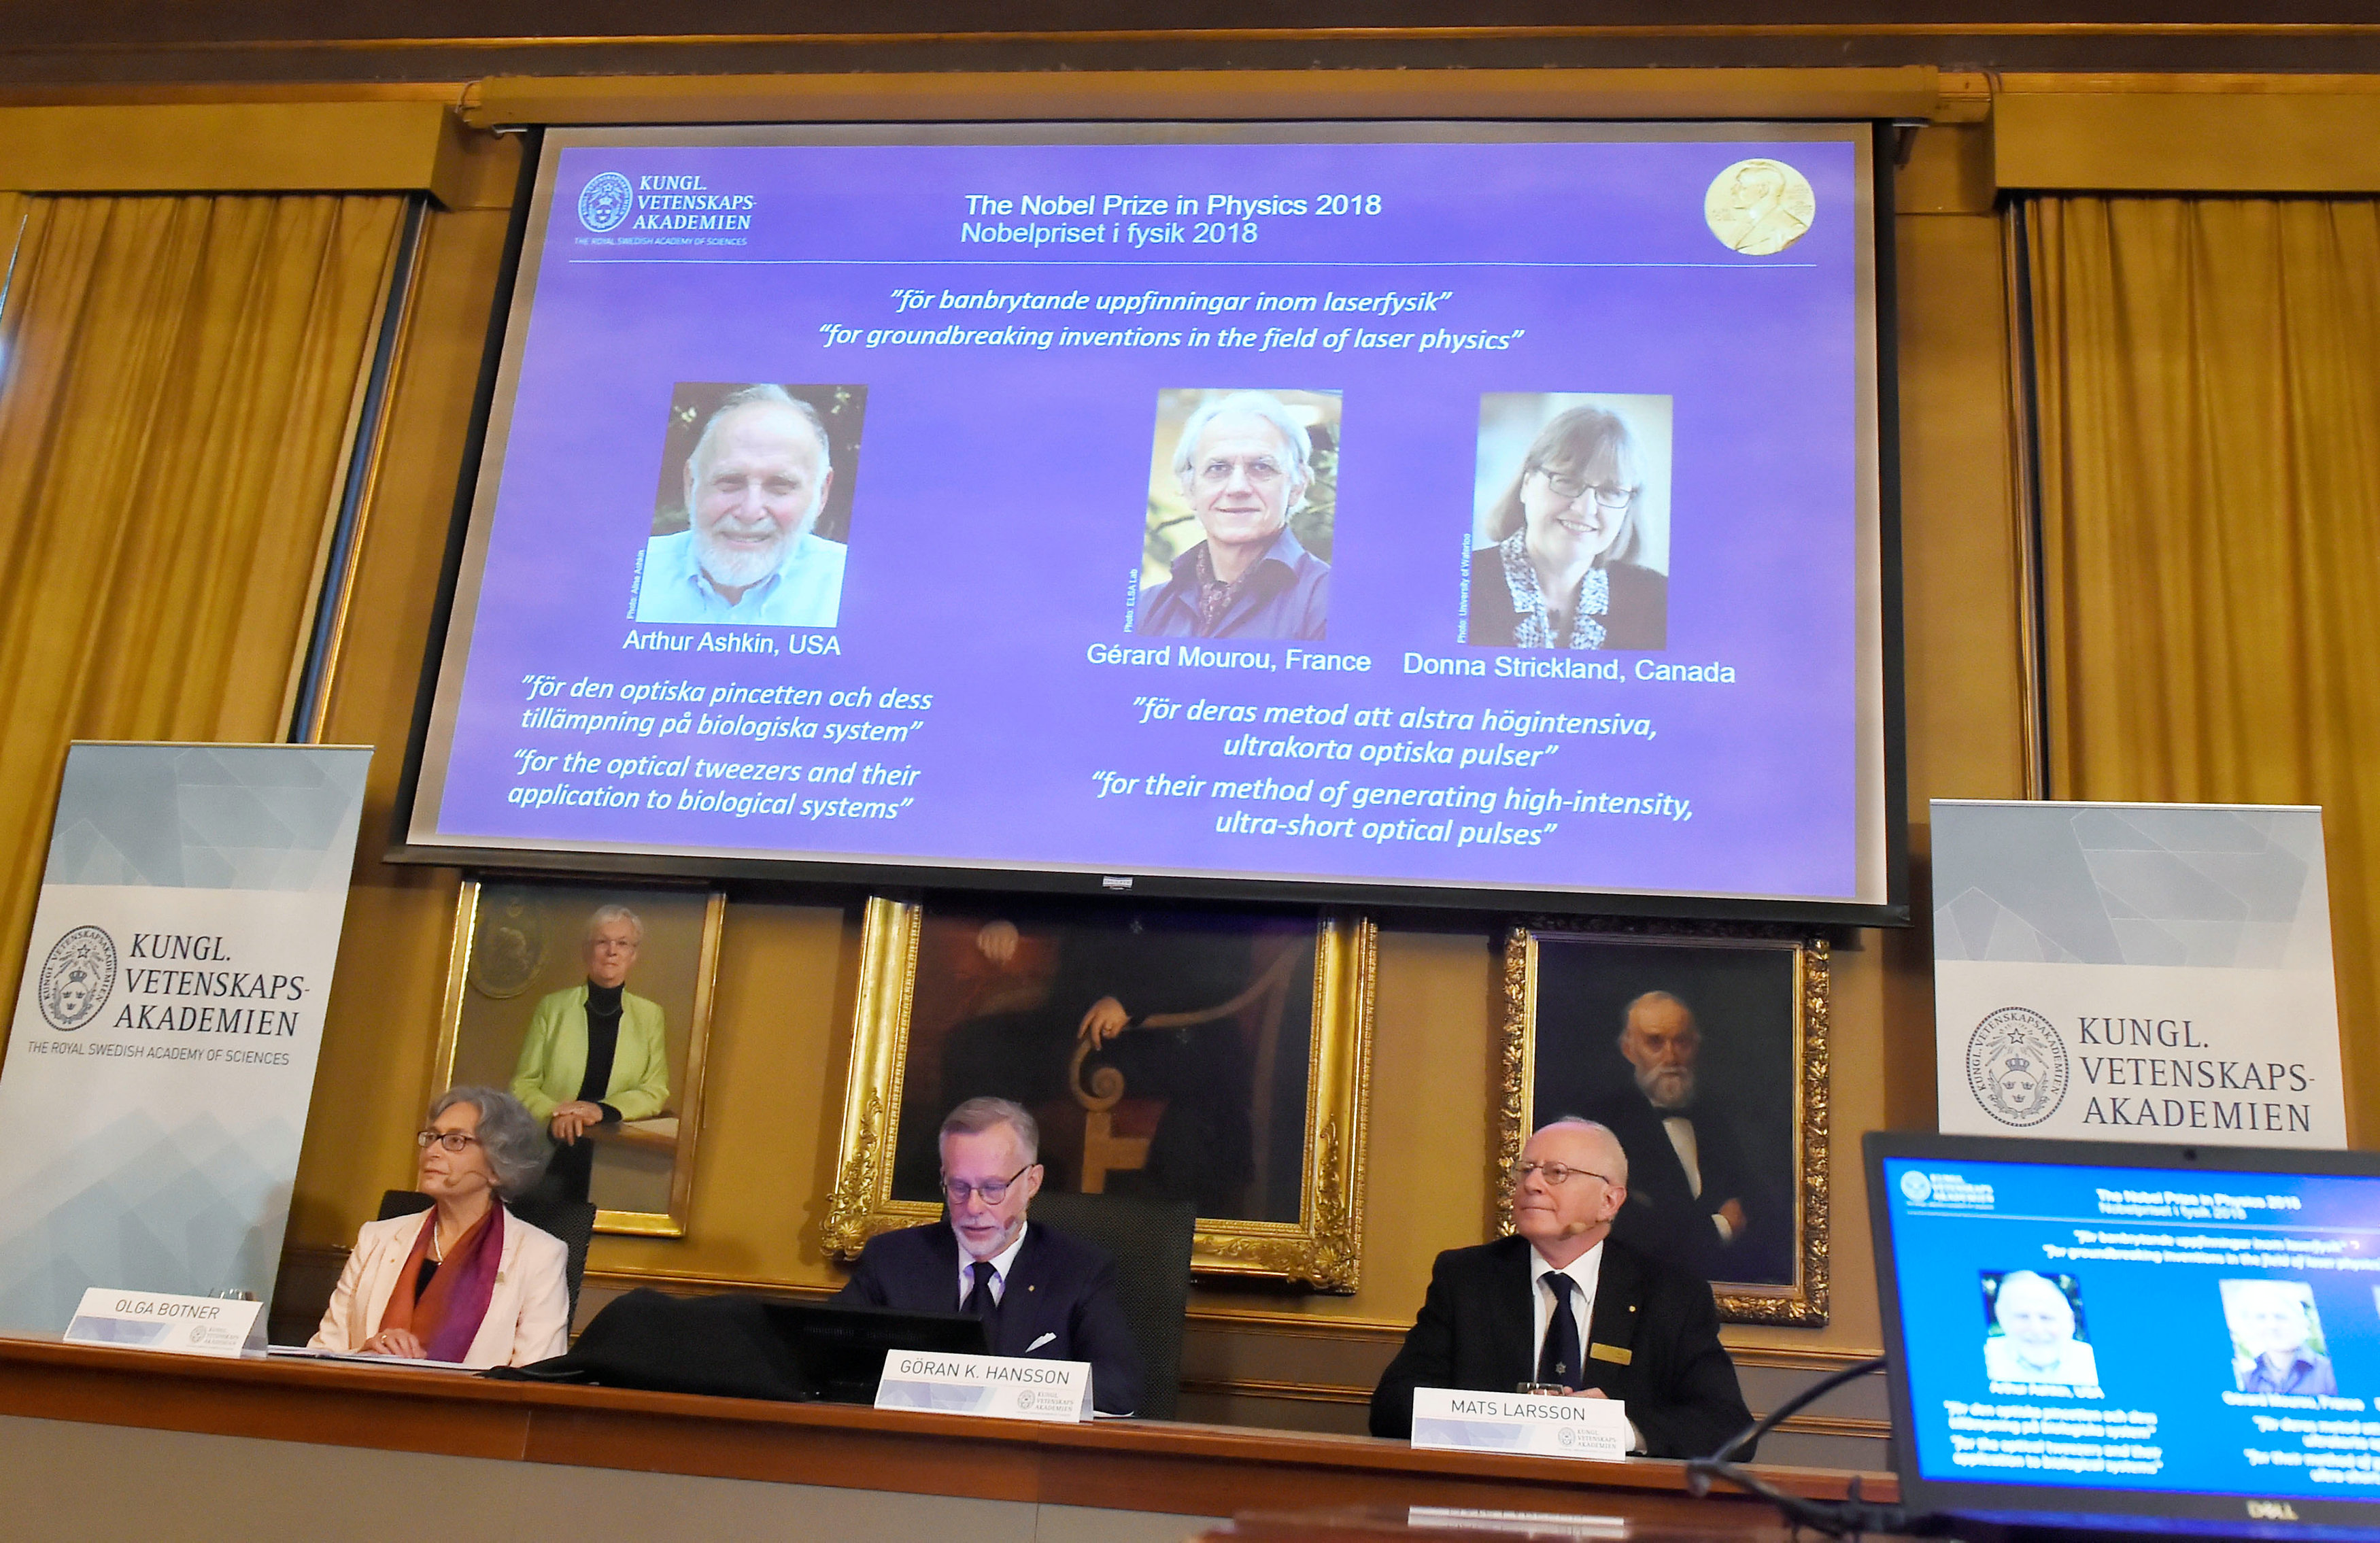 The Nobel Prize laureates for physics 2018 Arthur Ashkin of the United States, Gerard Mourou of France and Donna Strickland of Canada are announced in Stockholm